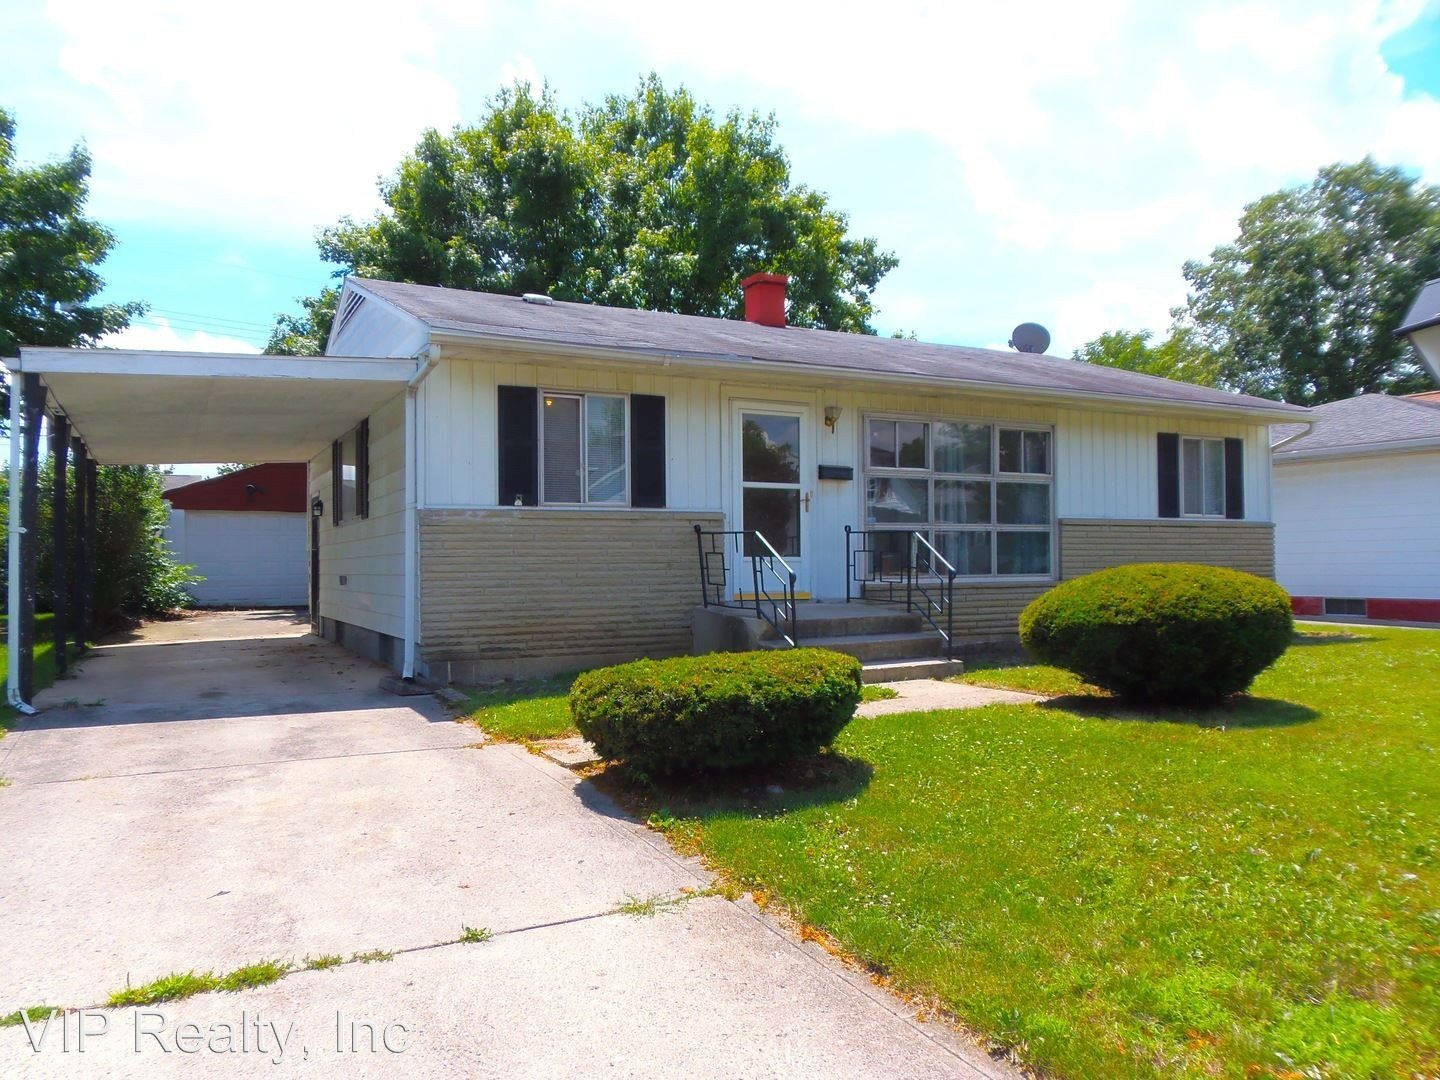 Best 2485 Eakin Rd Columbus Oh 43204 3 Bedroom House For Rent For 849 Month Zumper With Pictures